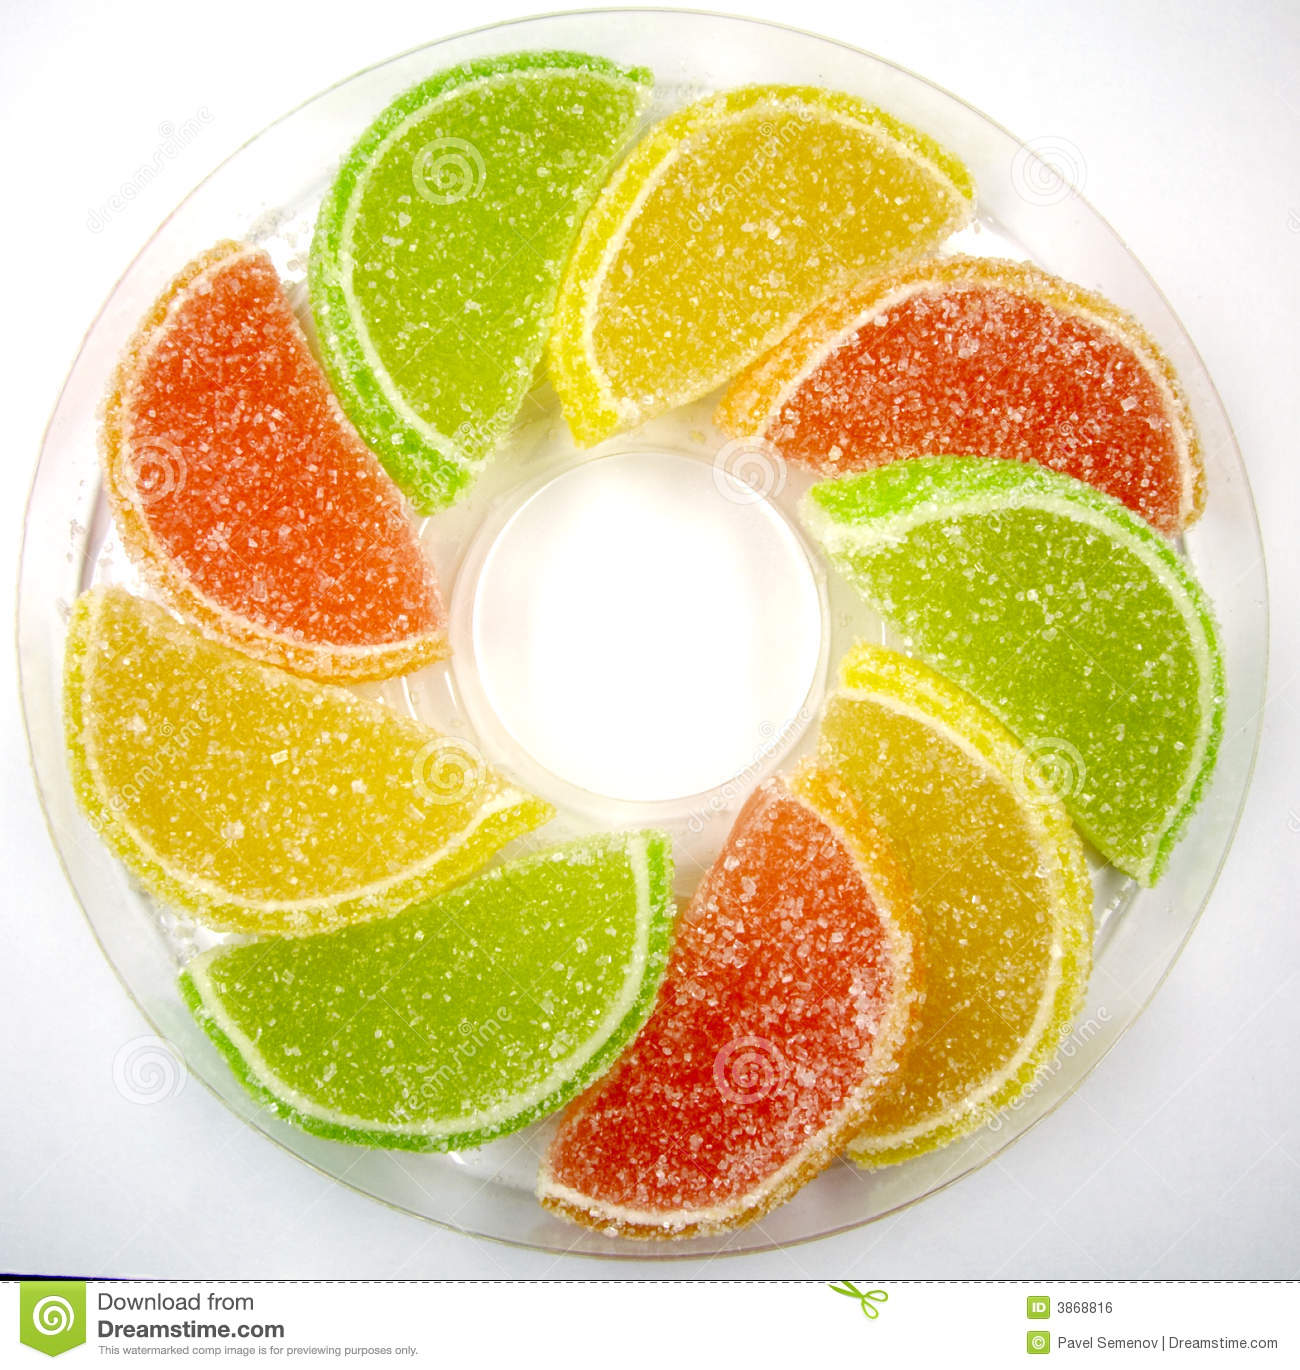 colour fruit candy royalty free stock image image 3868816 free clip art for business cards ireland free clip art for business cards ireland